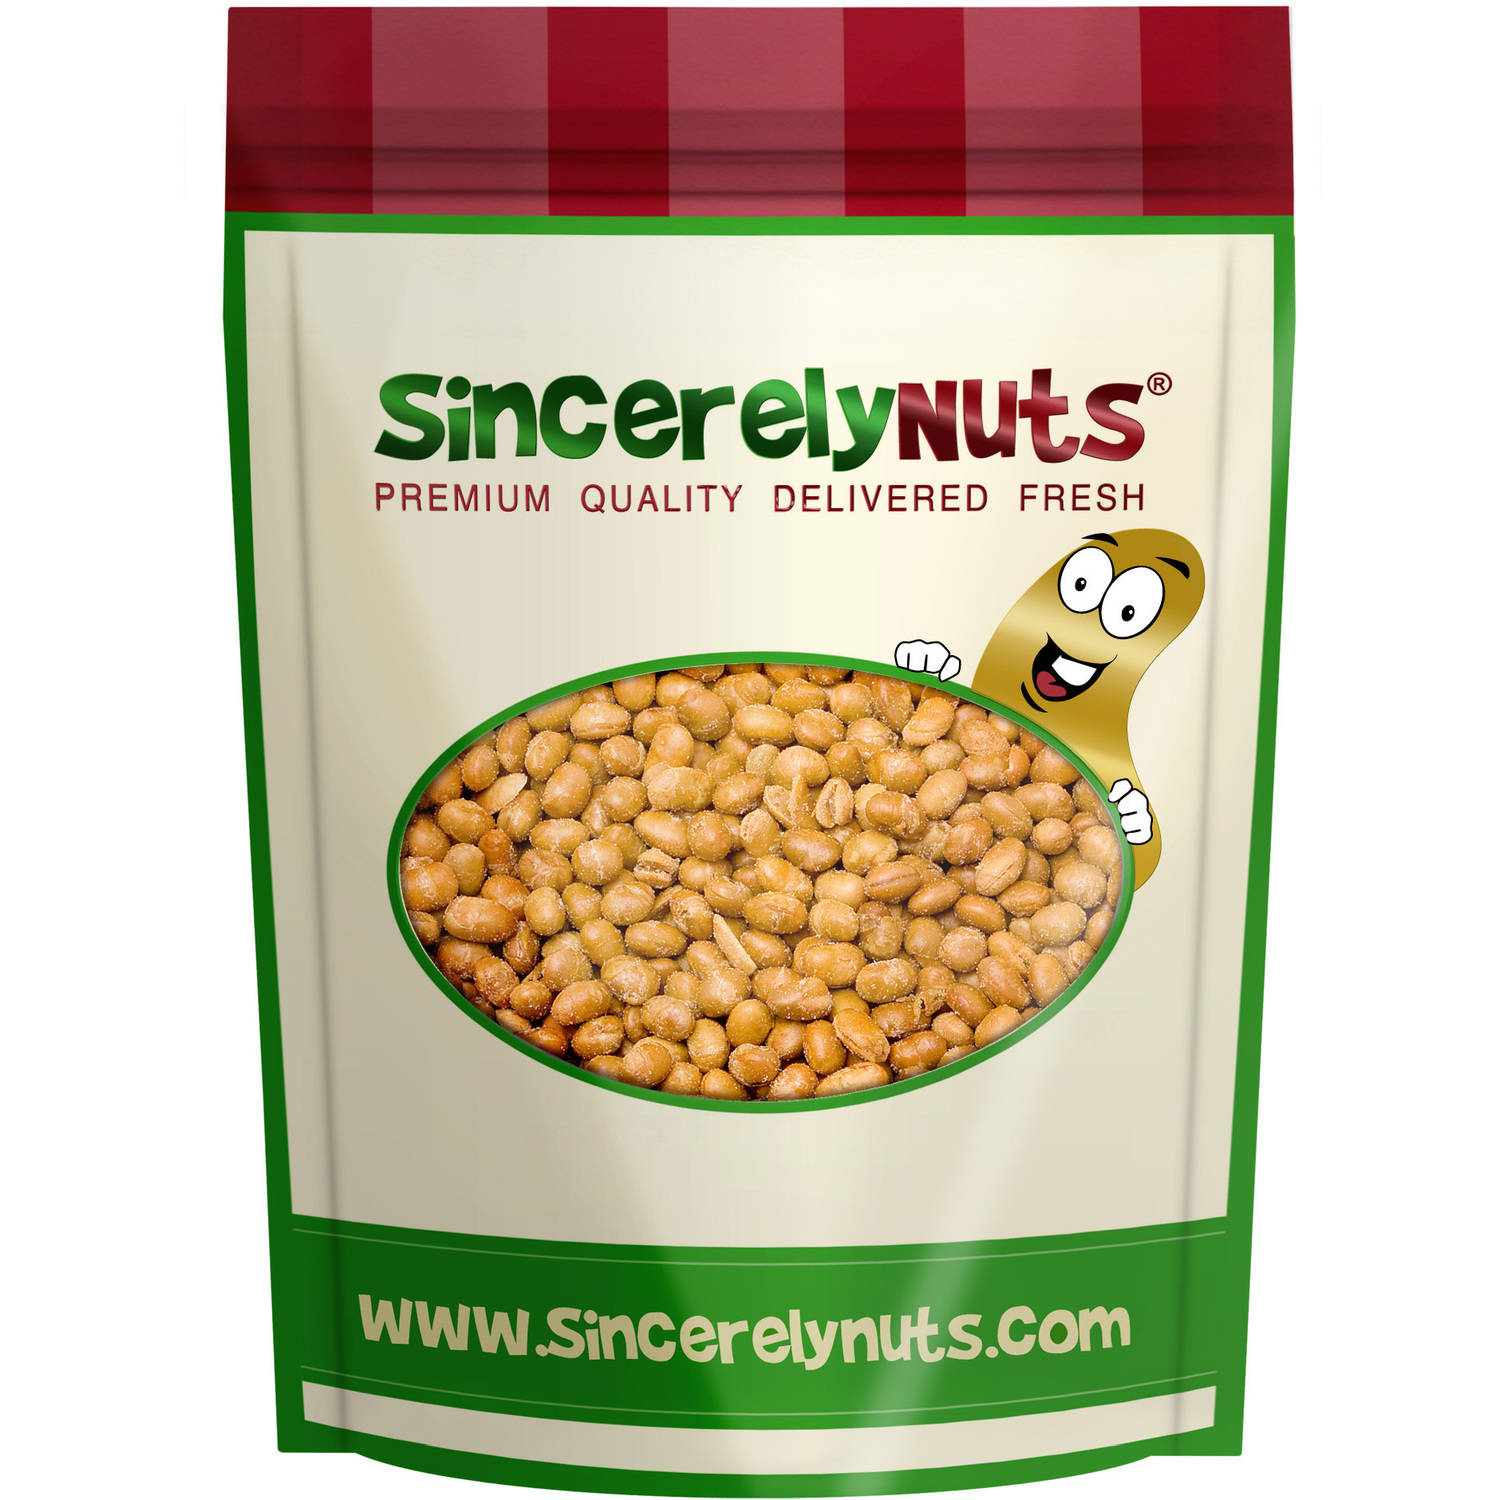 Sincerely Nuts Soybeans Roasted Salted, 2 LB Bag by Sincerely Nuts